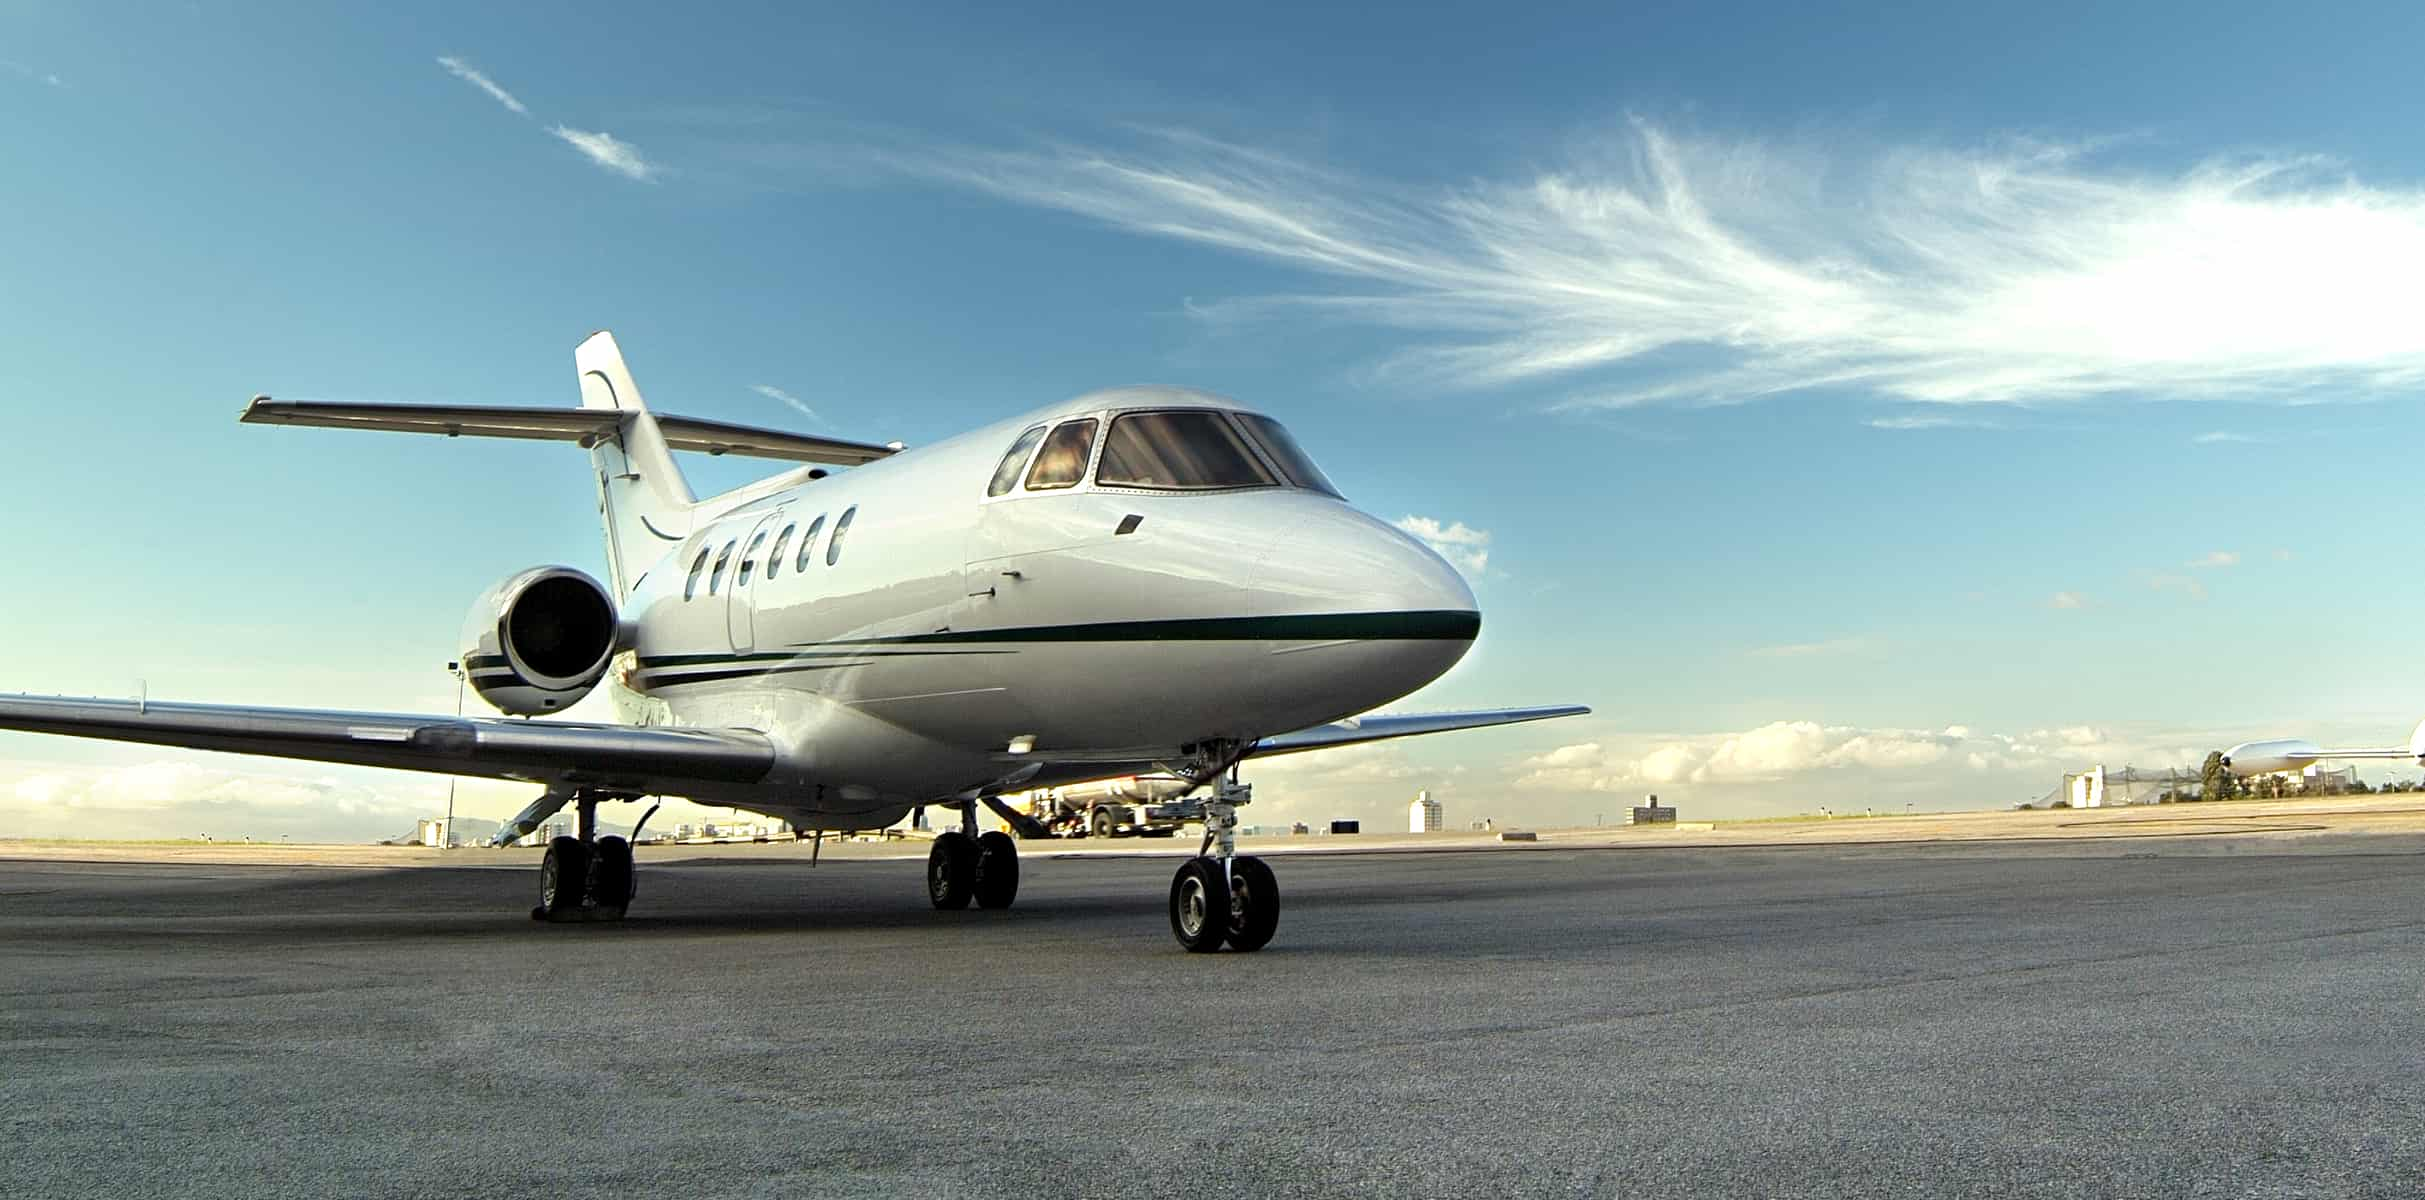 How to find private jet charter empty legs with mlkjets1 - How to find private jet charter empty legs with mlkjets